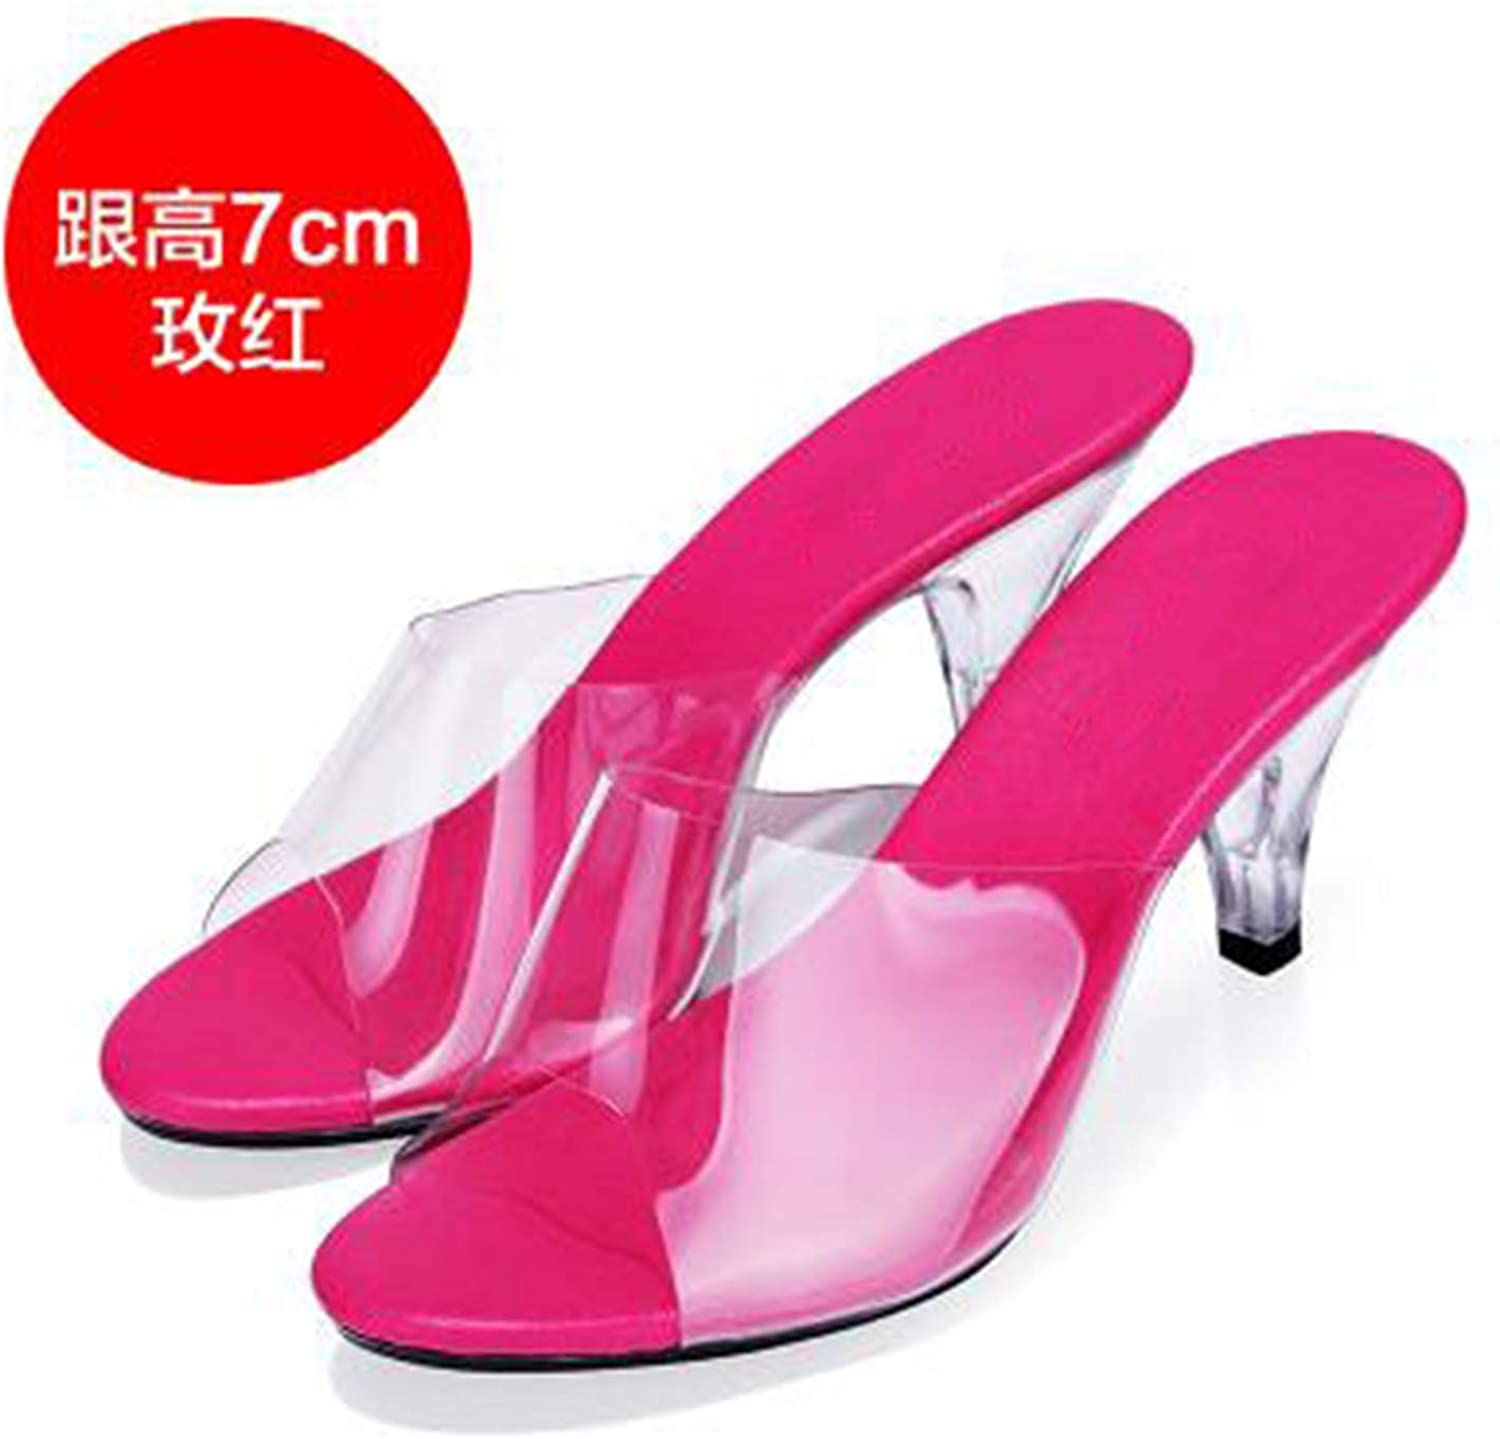 Woman Summer Sandals Slippers Sexy High - Heeled shoes Model Catwalk Transparent Crystal Slippers